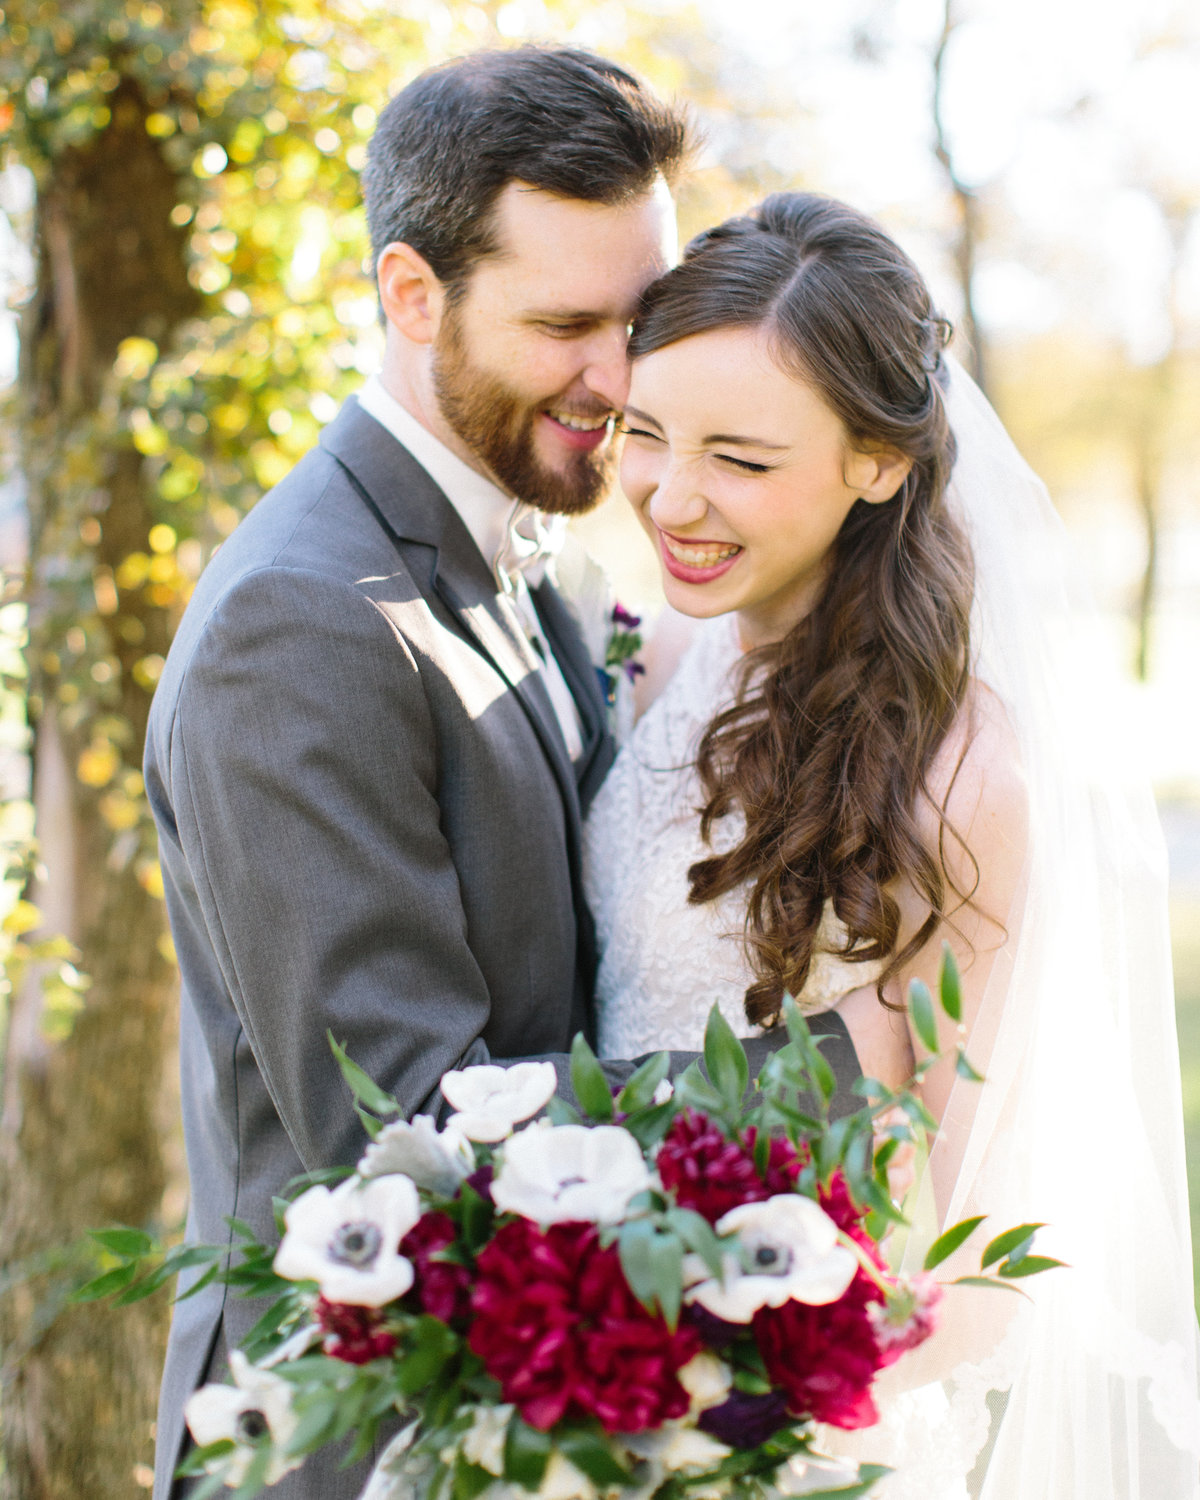 AndrewsWedding_BrideGroomPortraits-58-1